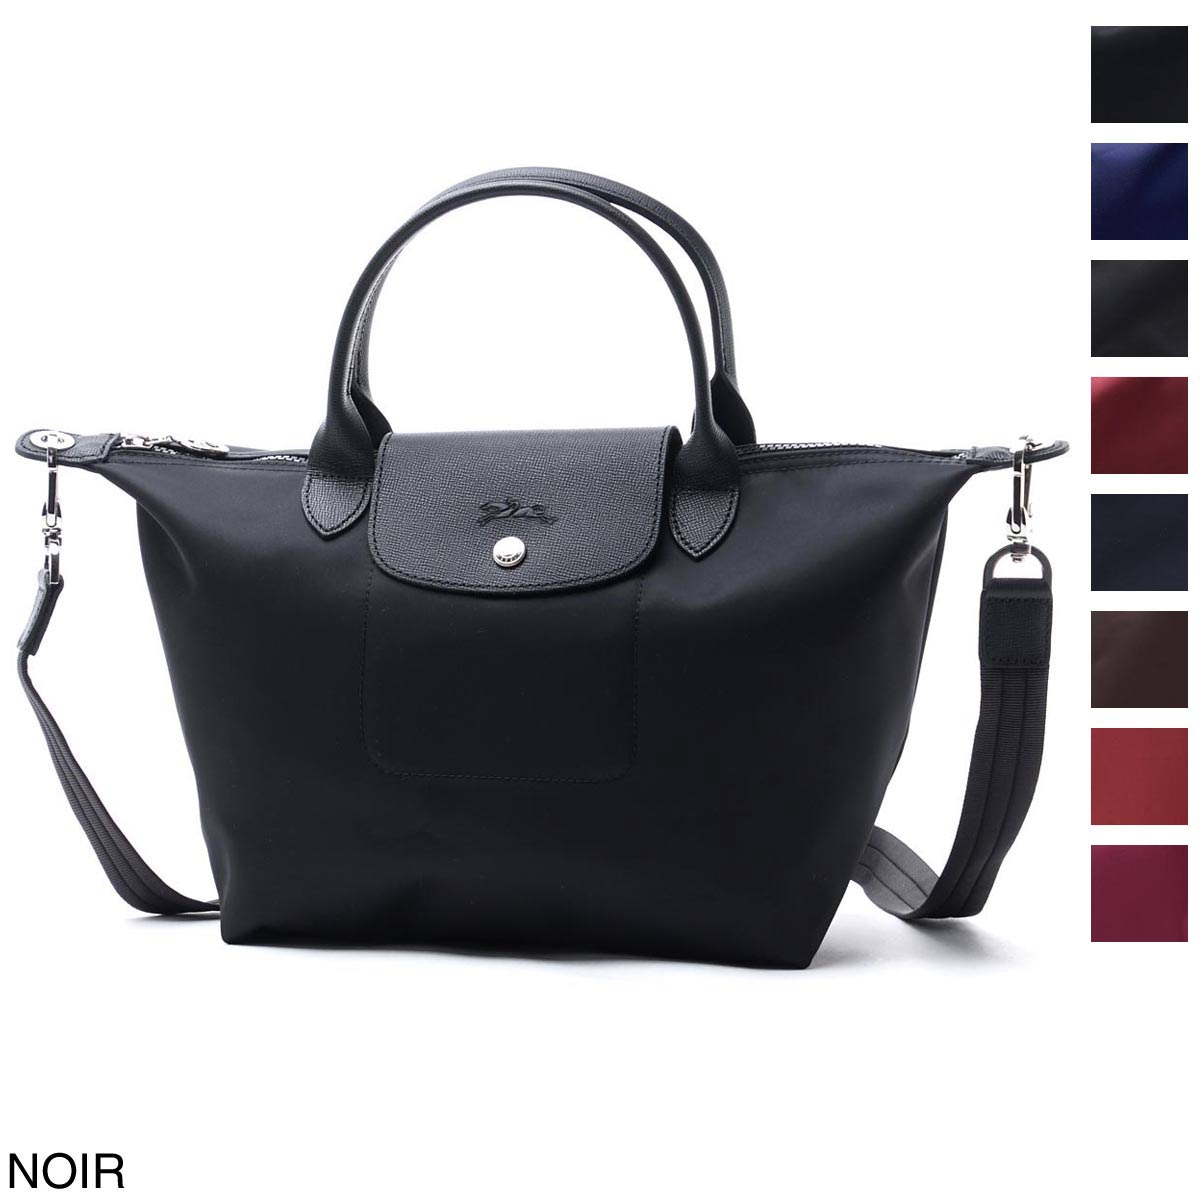 Longchamp Handbag 2way Lady S Black Tote Bag Commuting Light Weight 1512 578 001 Le Pliage プリアージュネオ